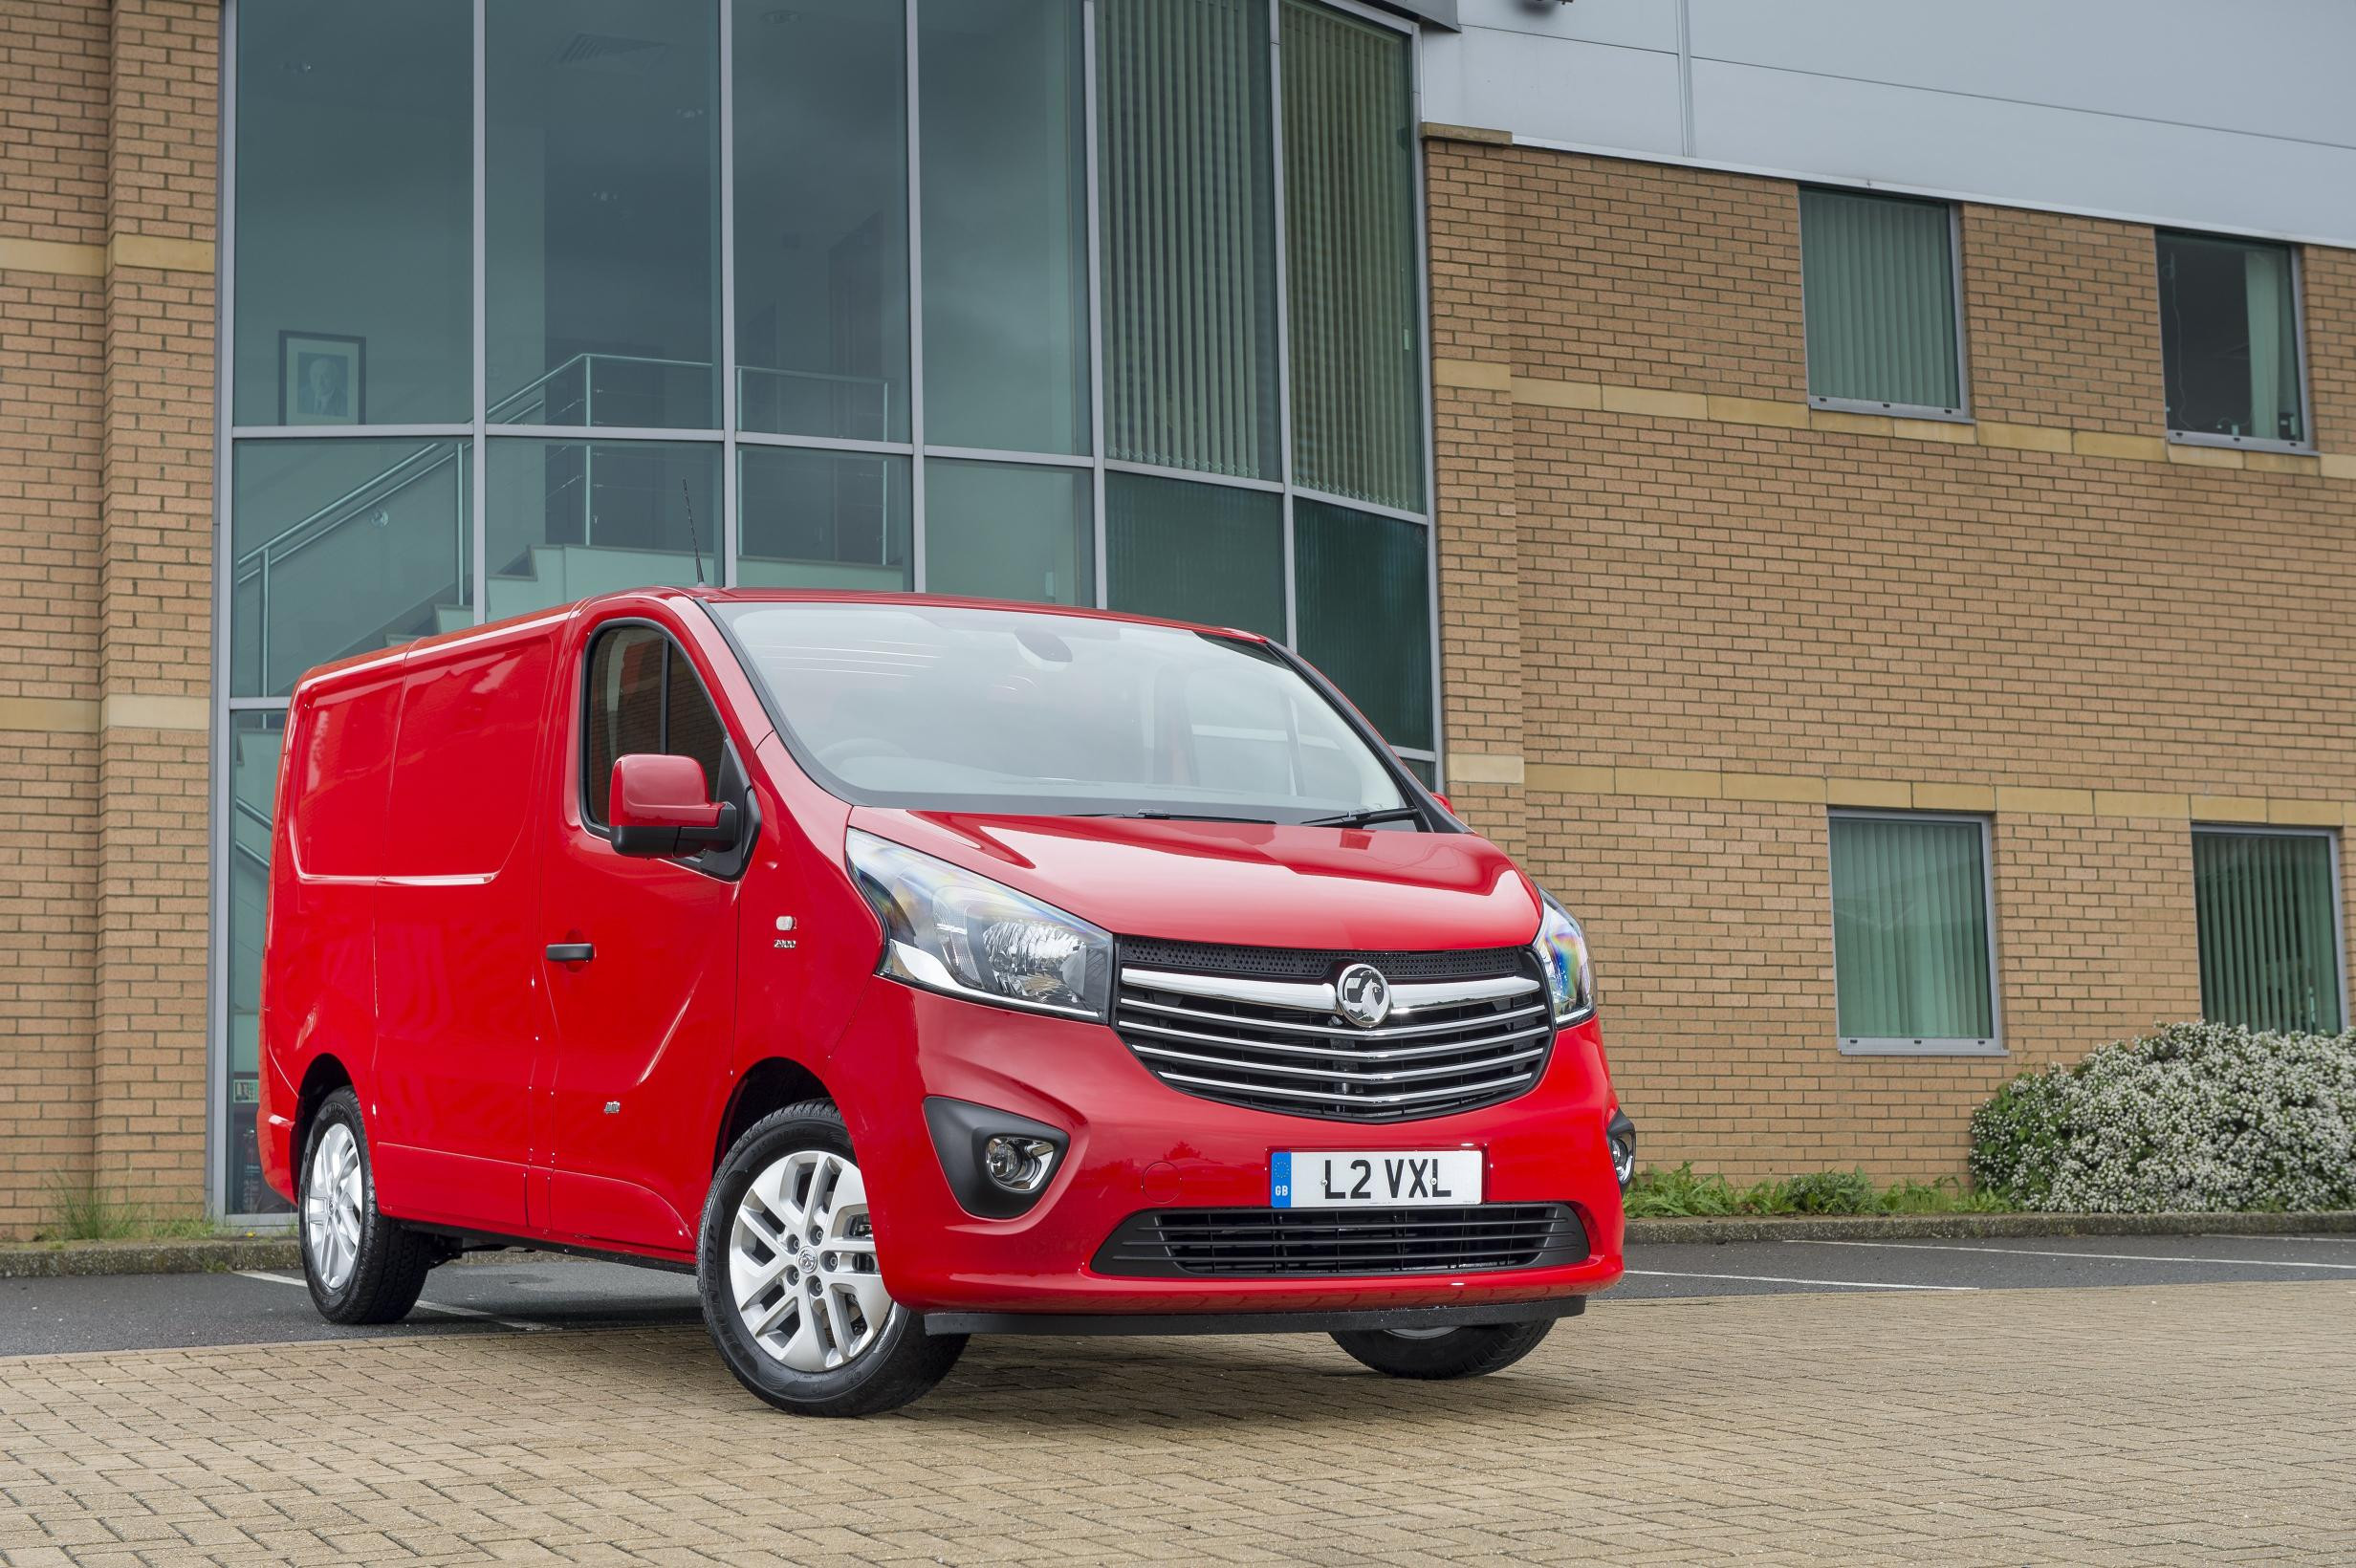 Red Vauxhall Vivaro parked in front of office unit, facing right